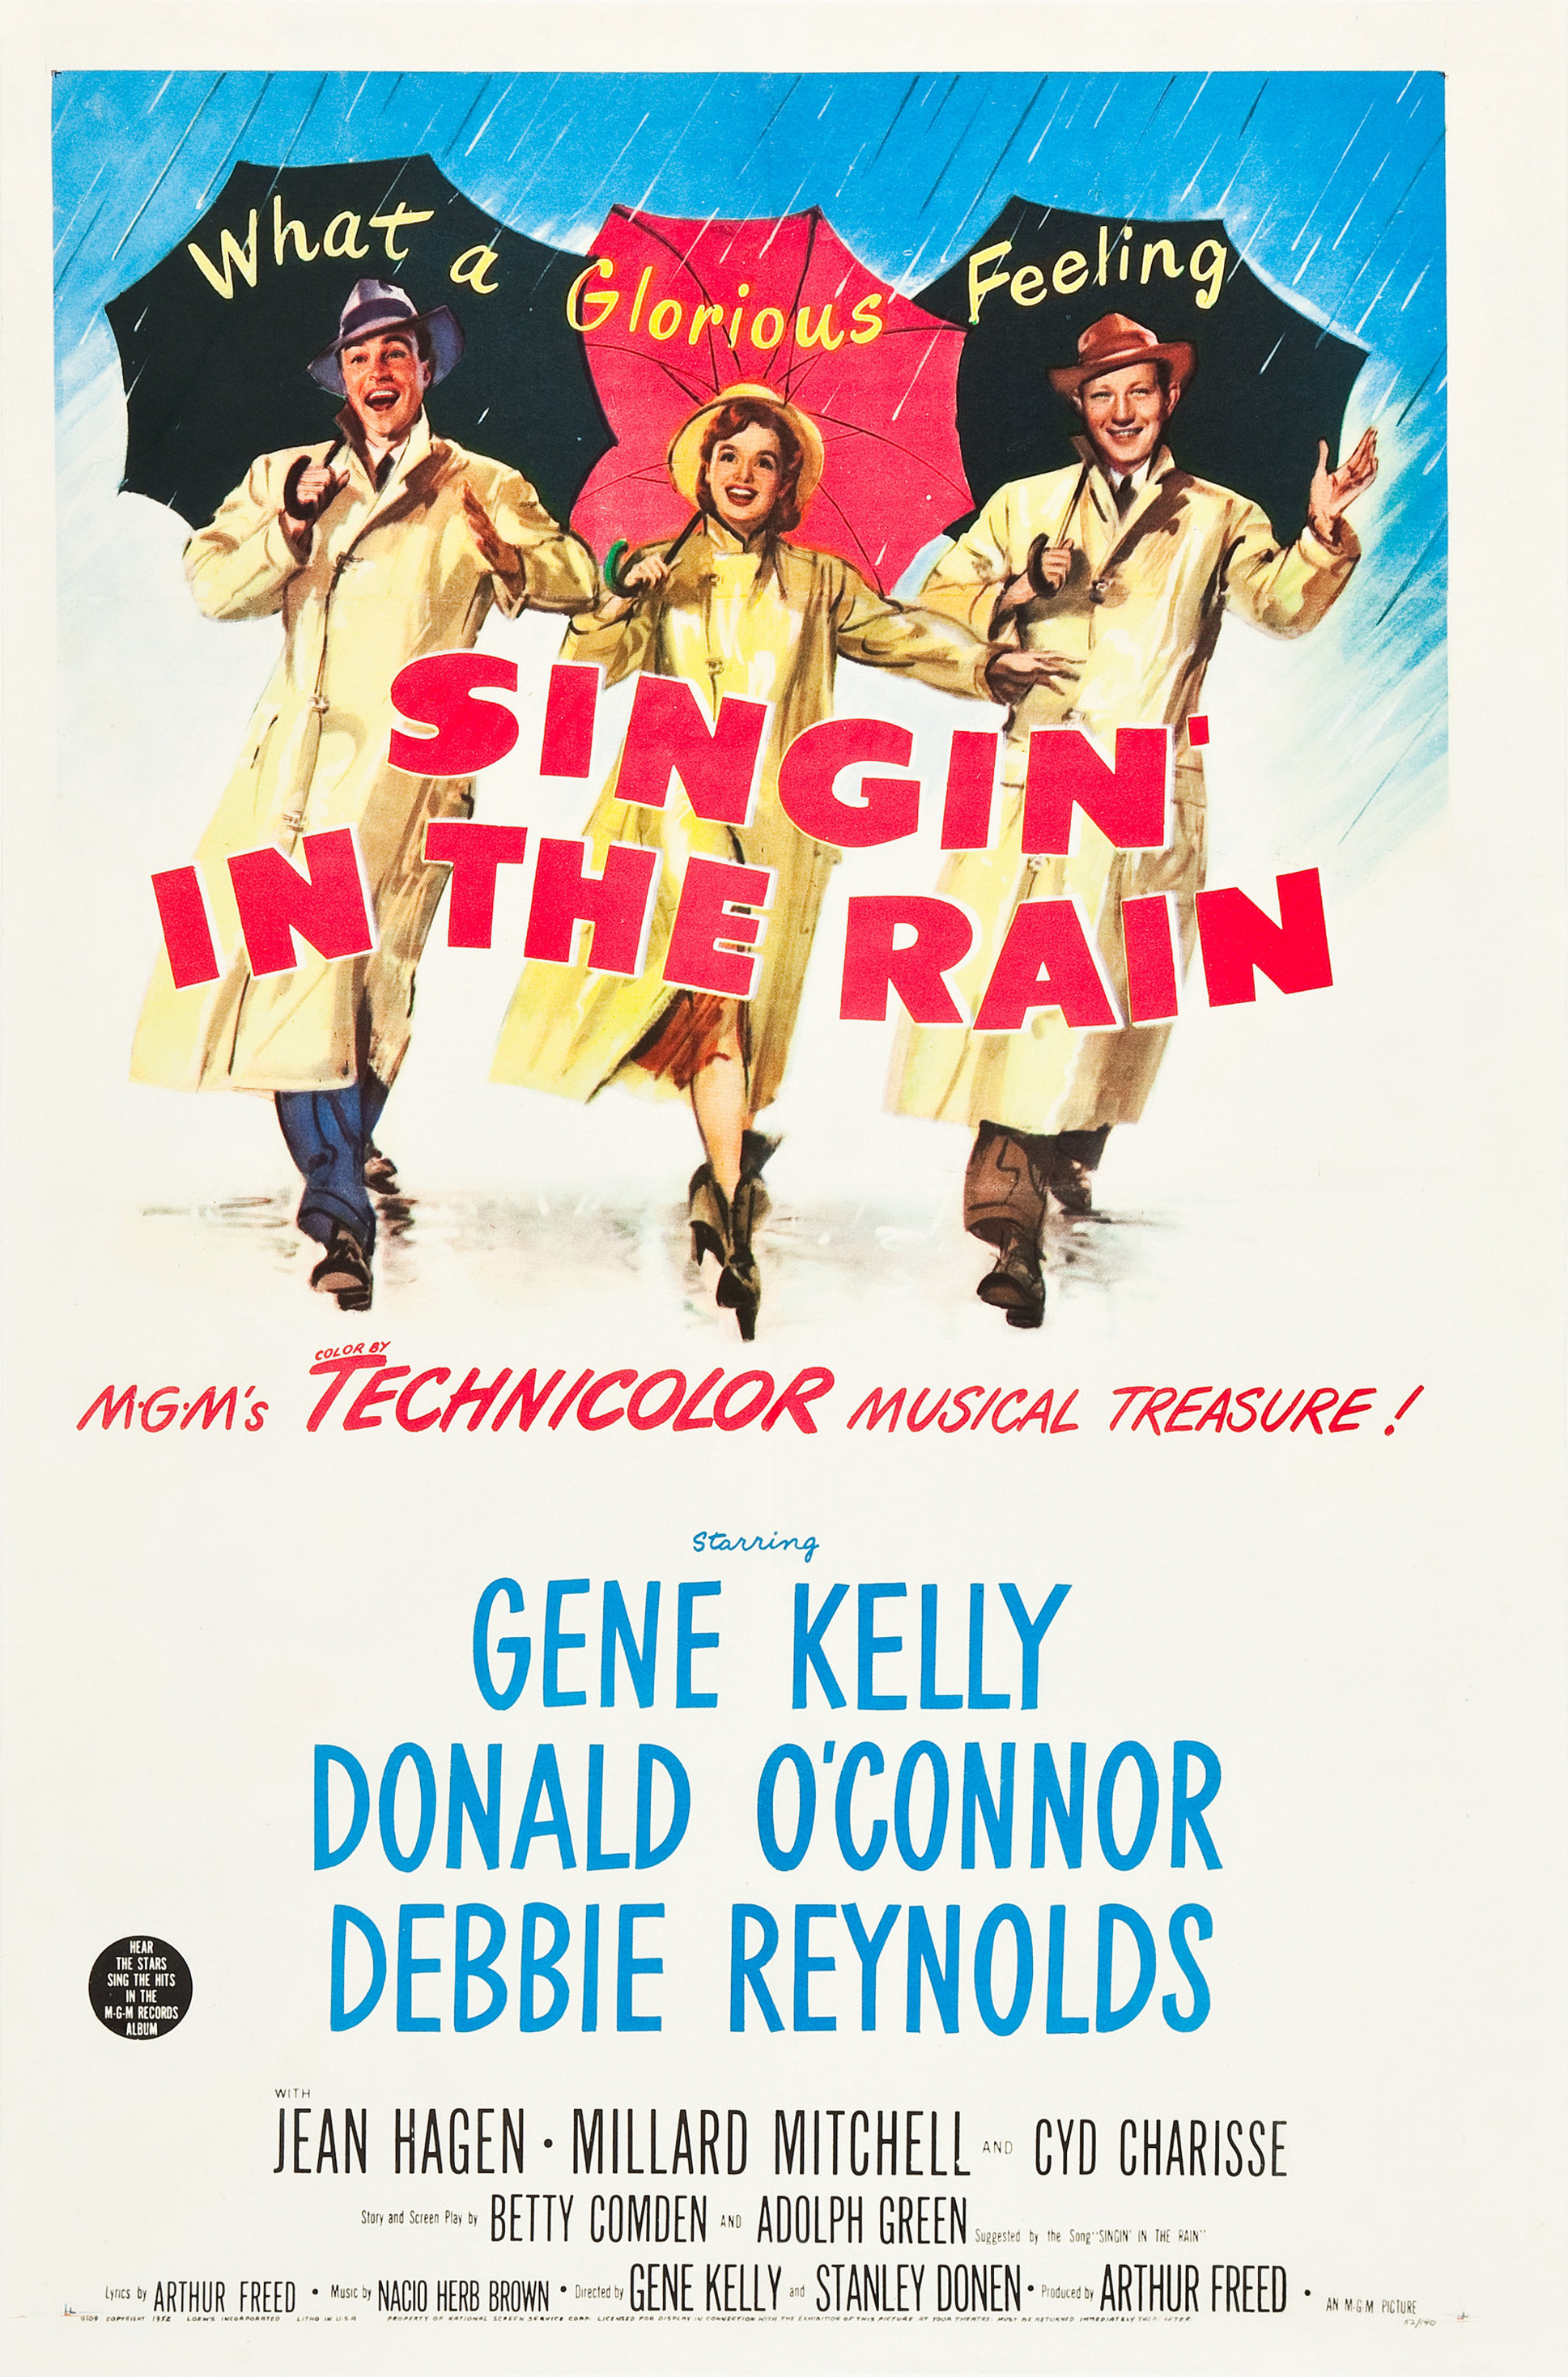 https://upload.wikimedia.org/wikipedia/commons/5/5d/Singin%27_in_the_Rain_%281952_poster%29.jpg